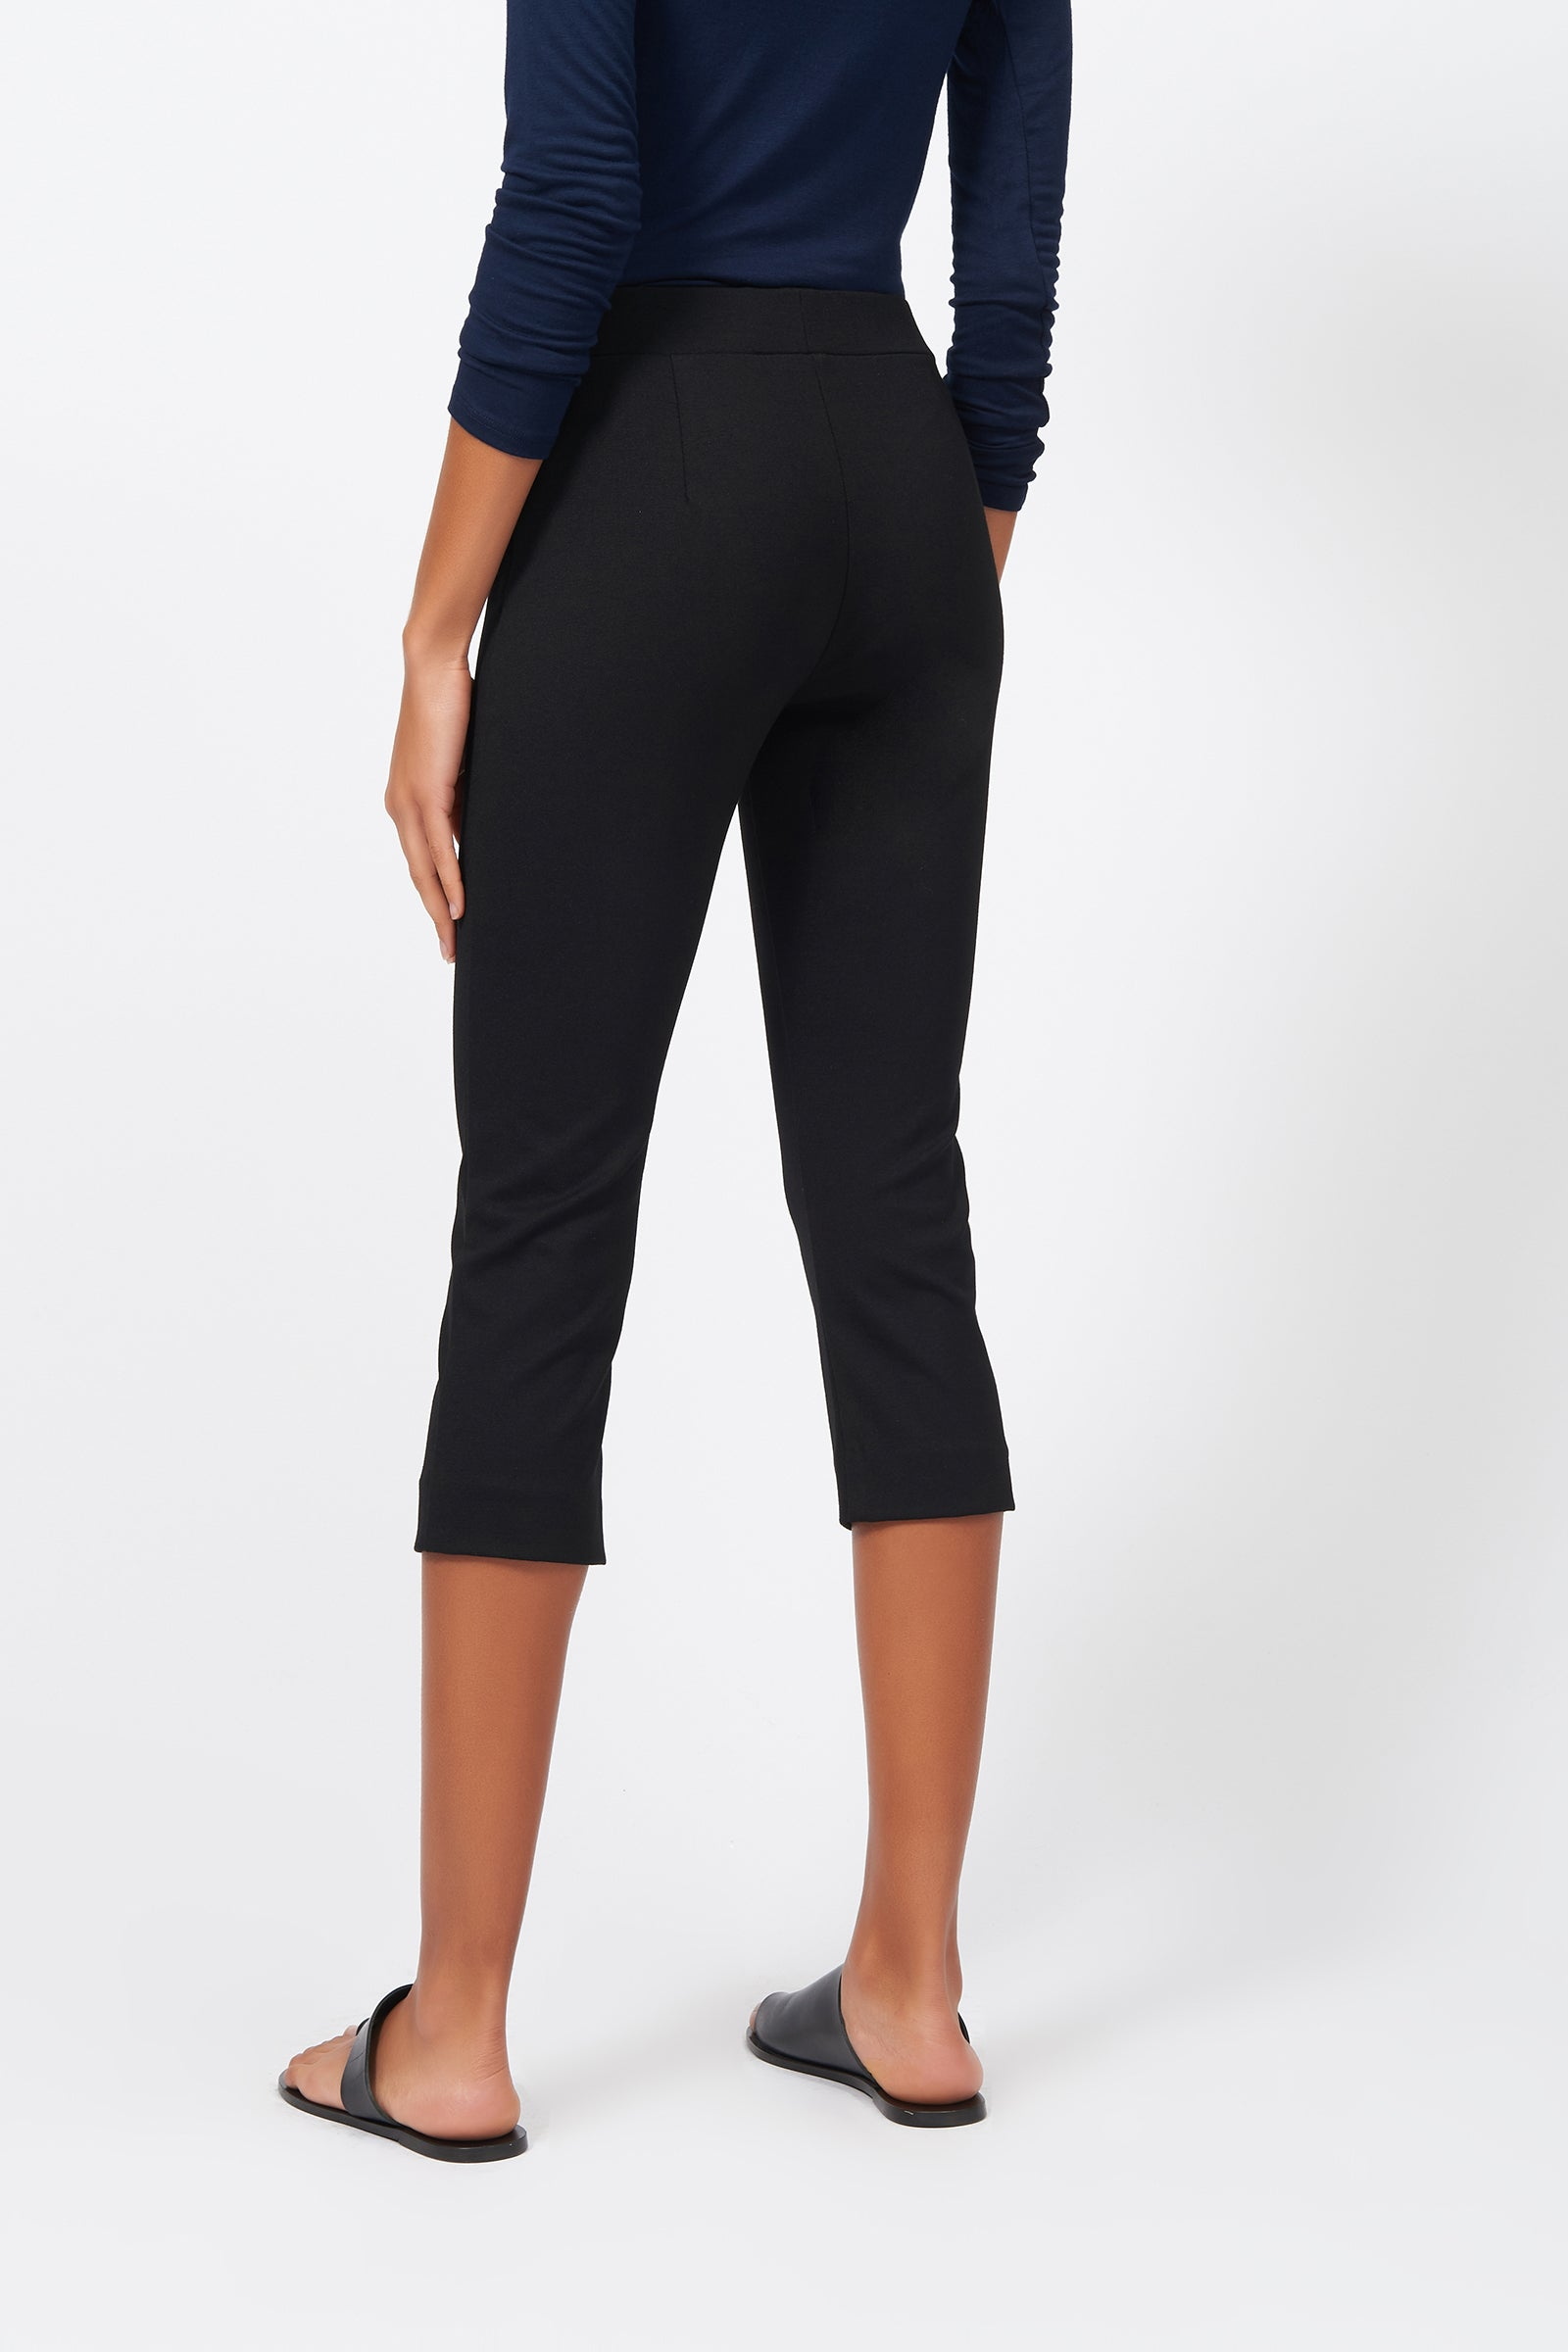 Kal Rieman Pintuck Ponte 3/4 Pant on Model Front View